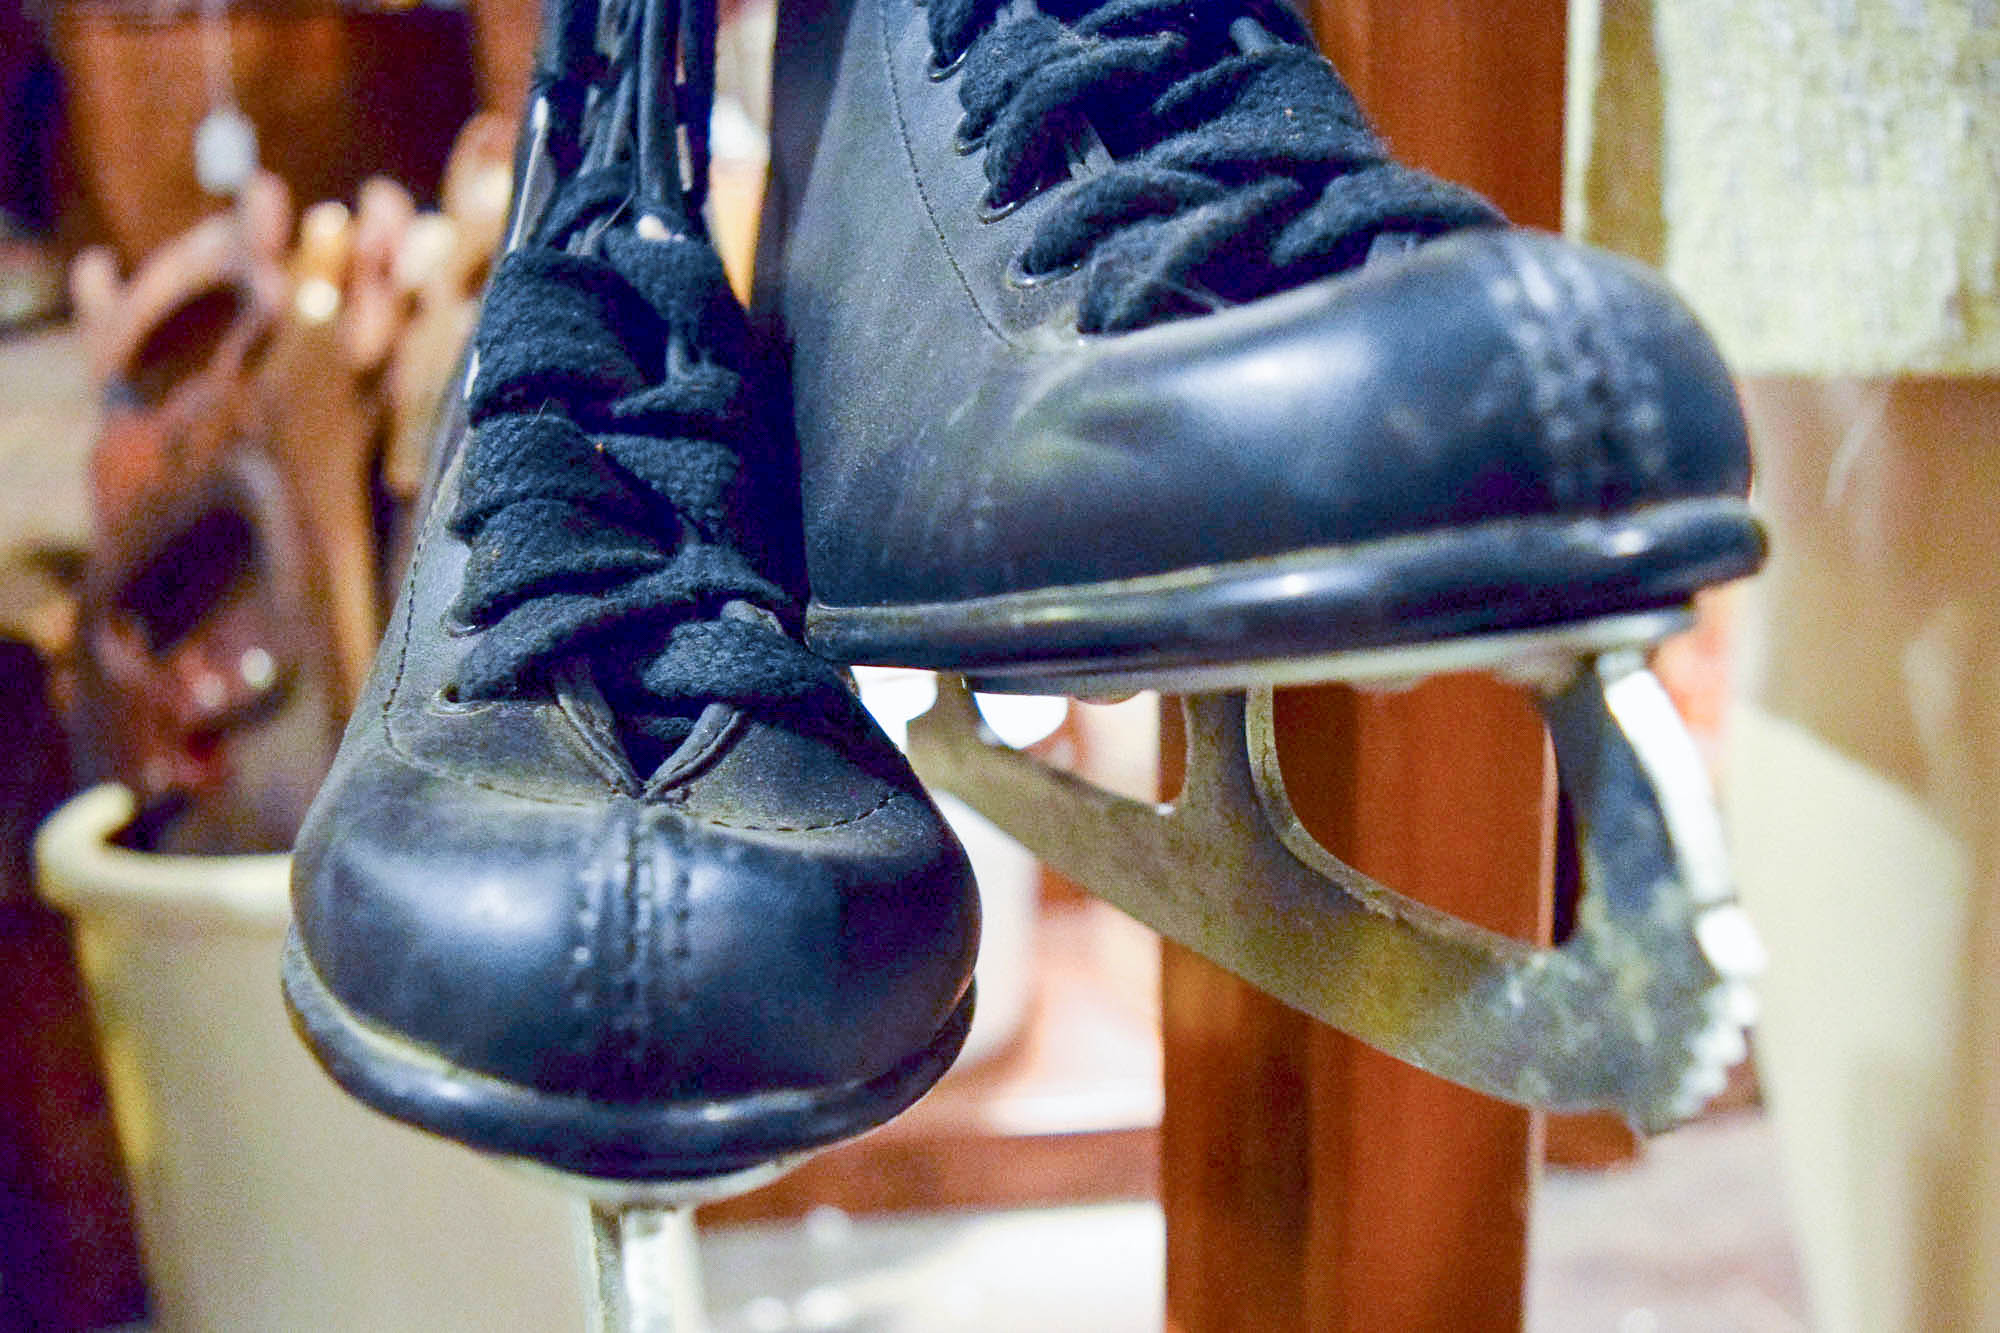 Vintage Ice Skates | Refindings York, PA | Architectural Salvage & Antiques